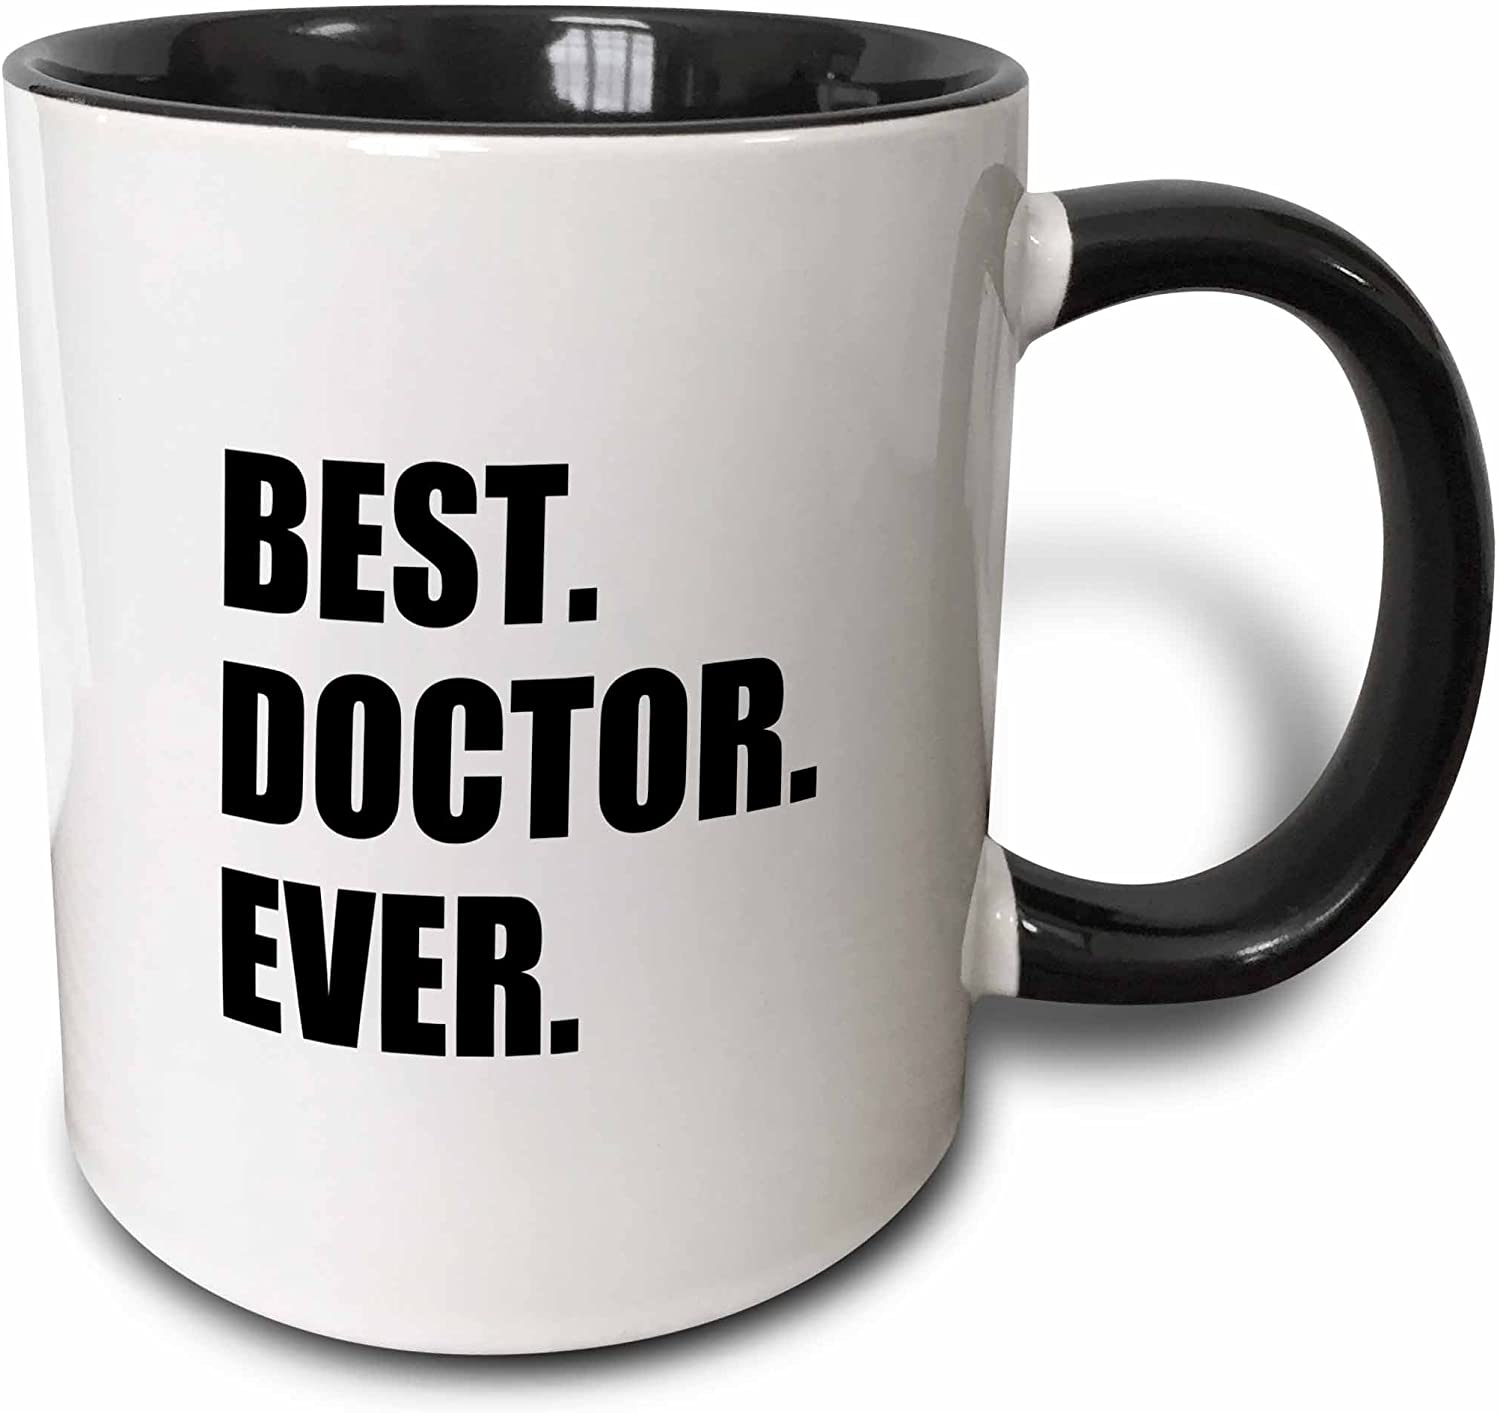 3dRose Best Doctor Ever - Fun Job Pride Gift For Gps Specialist Drs And PhDs Two Tone Mug, 11 oz, Black